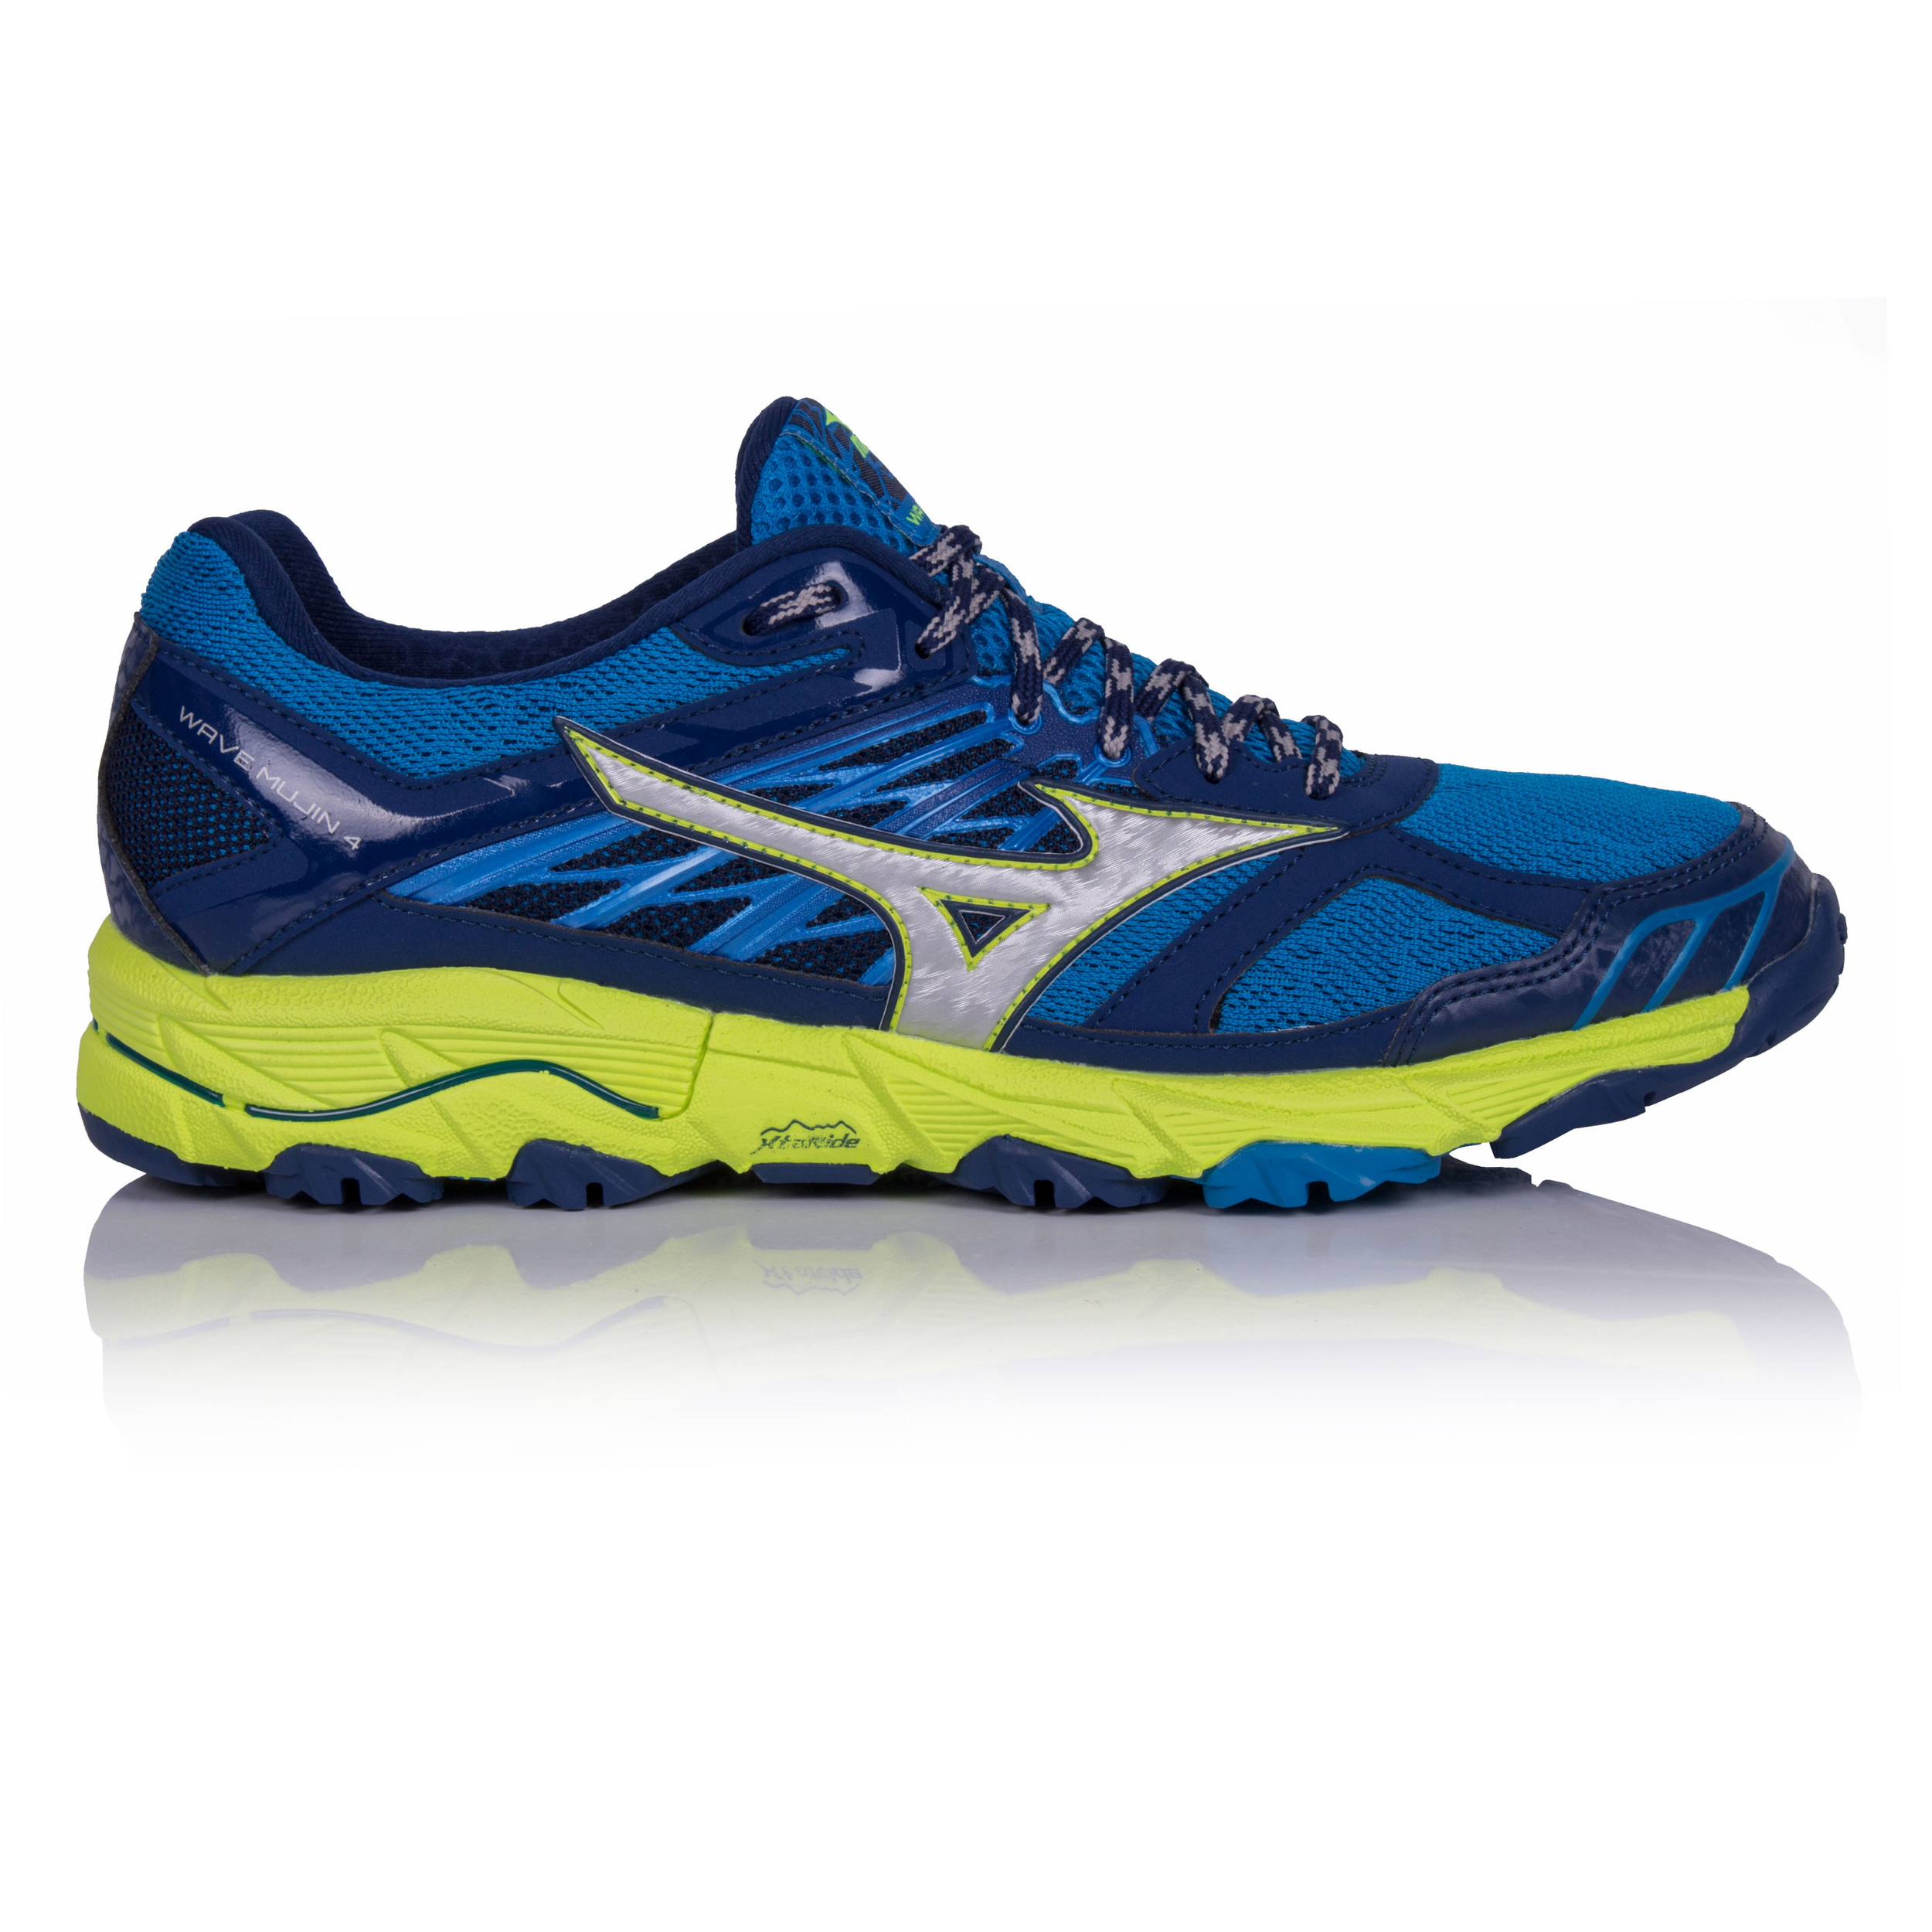 Mizuno Wave Mujin 4 Mens Blue Trail Running Sports Shoes Trainers Sneakers